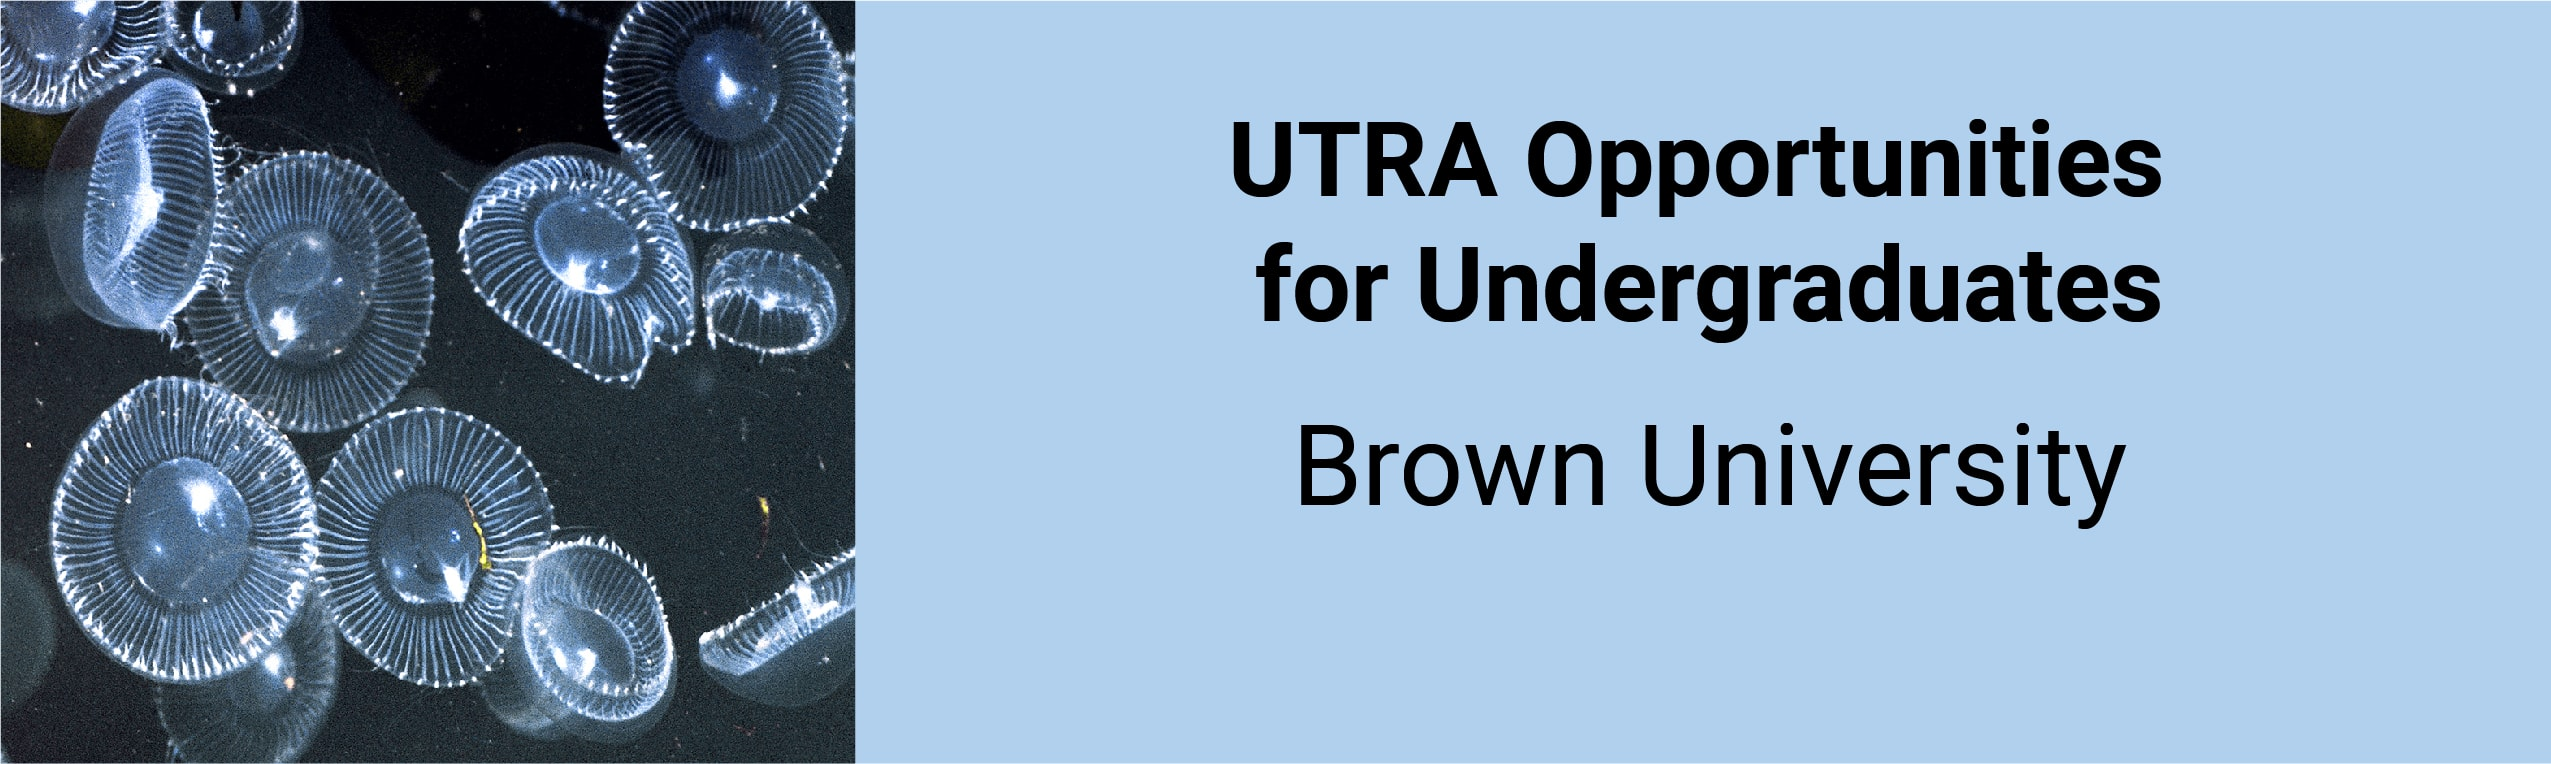 UTRA Opportunities for Undergraduates